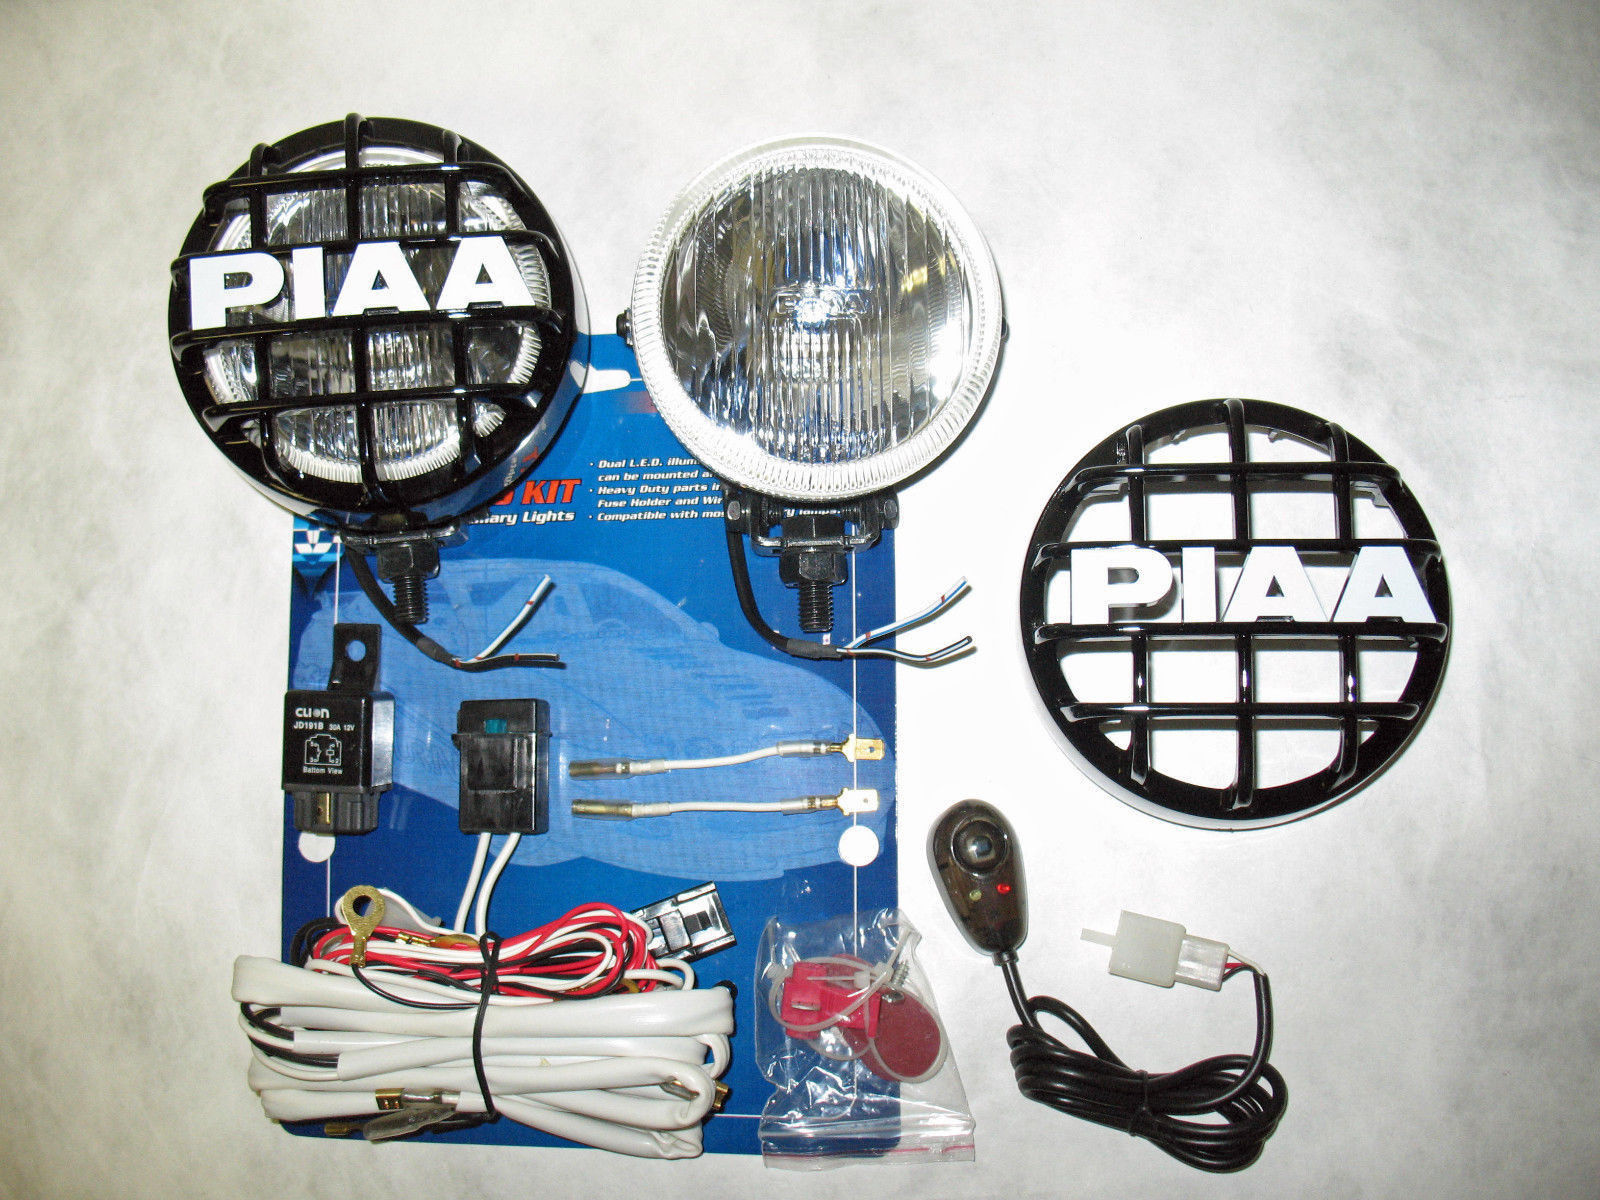 Polaris Ranger Rzr Piaa 510 Lamp Bar Atp And 50 Similar Items Fuse Box Star White Driving Lights Kit